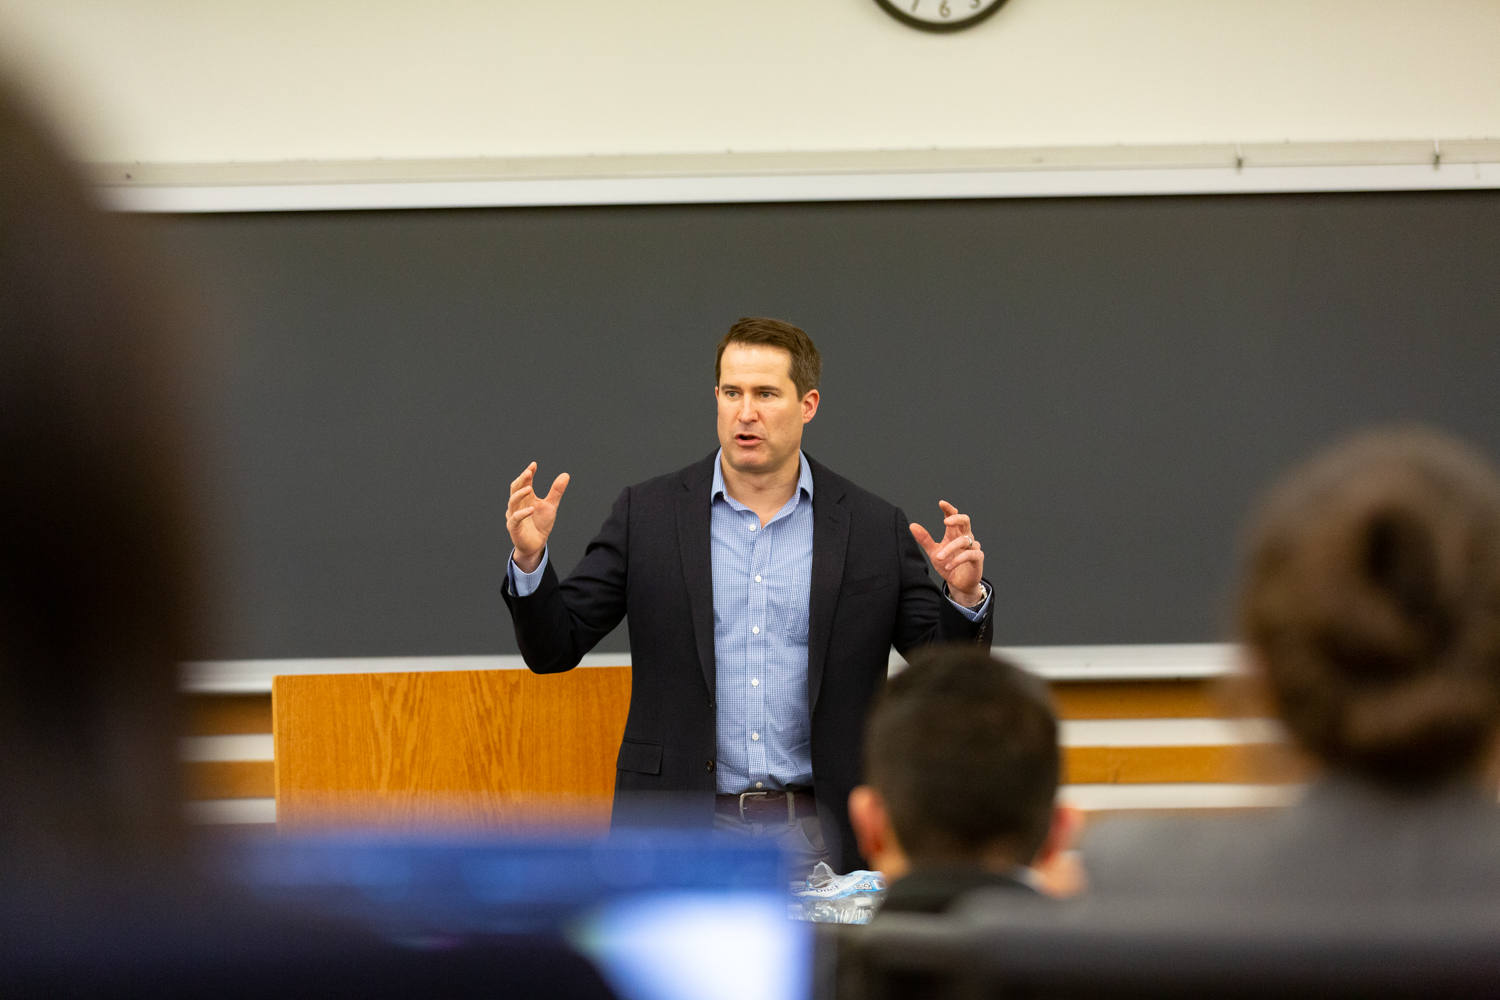 Congressman Seth Moulton (D-MA) speaks at the University of Iowa College of Law on Friday, Mar. 29, 2019. Moulton spoke on the importance of public service at a talk sponsored by the Law School's Veterans Law Association. (David Harmantas/The Daily Iowan)